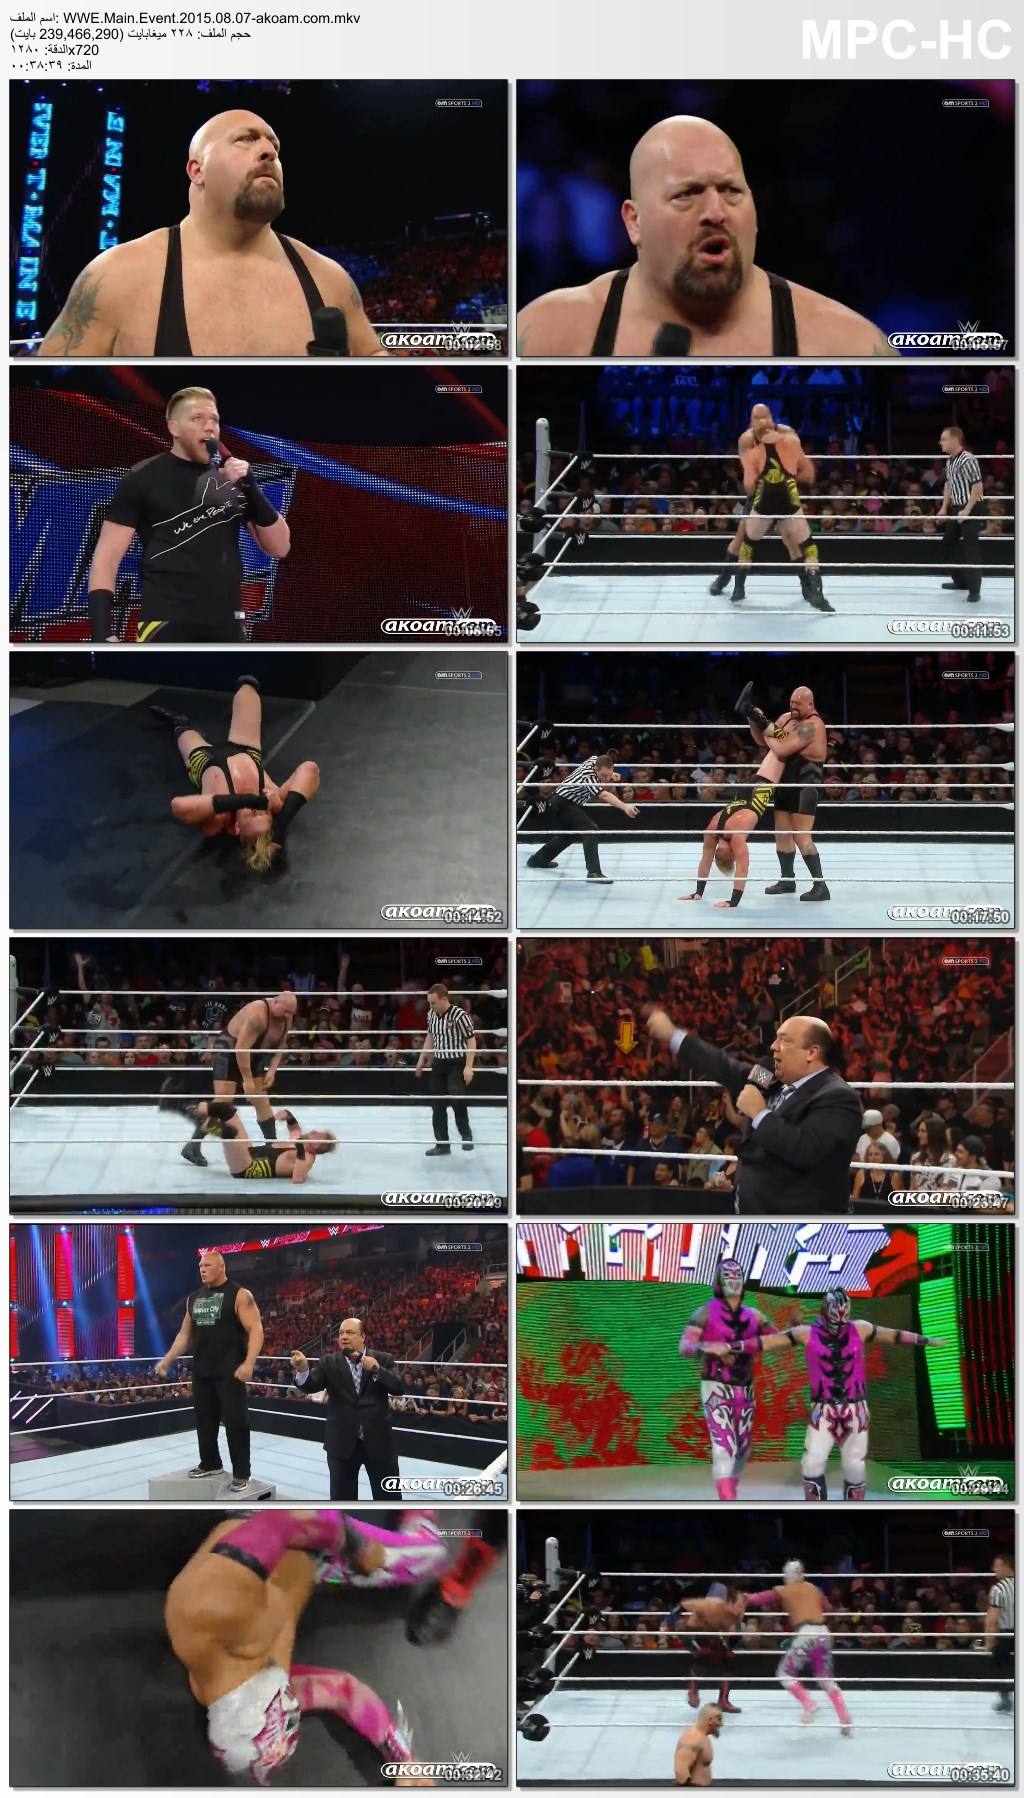 WWE,Main,Event,WWE Main Event